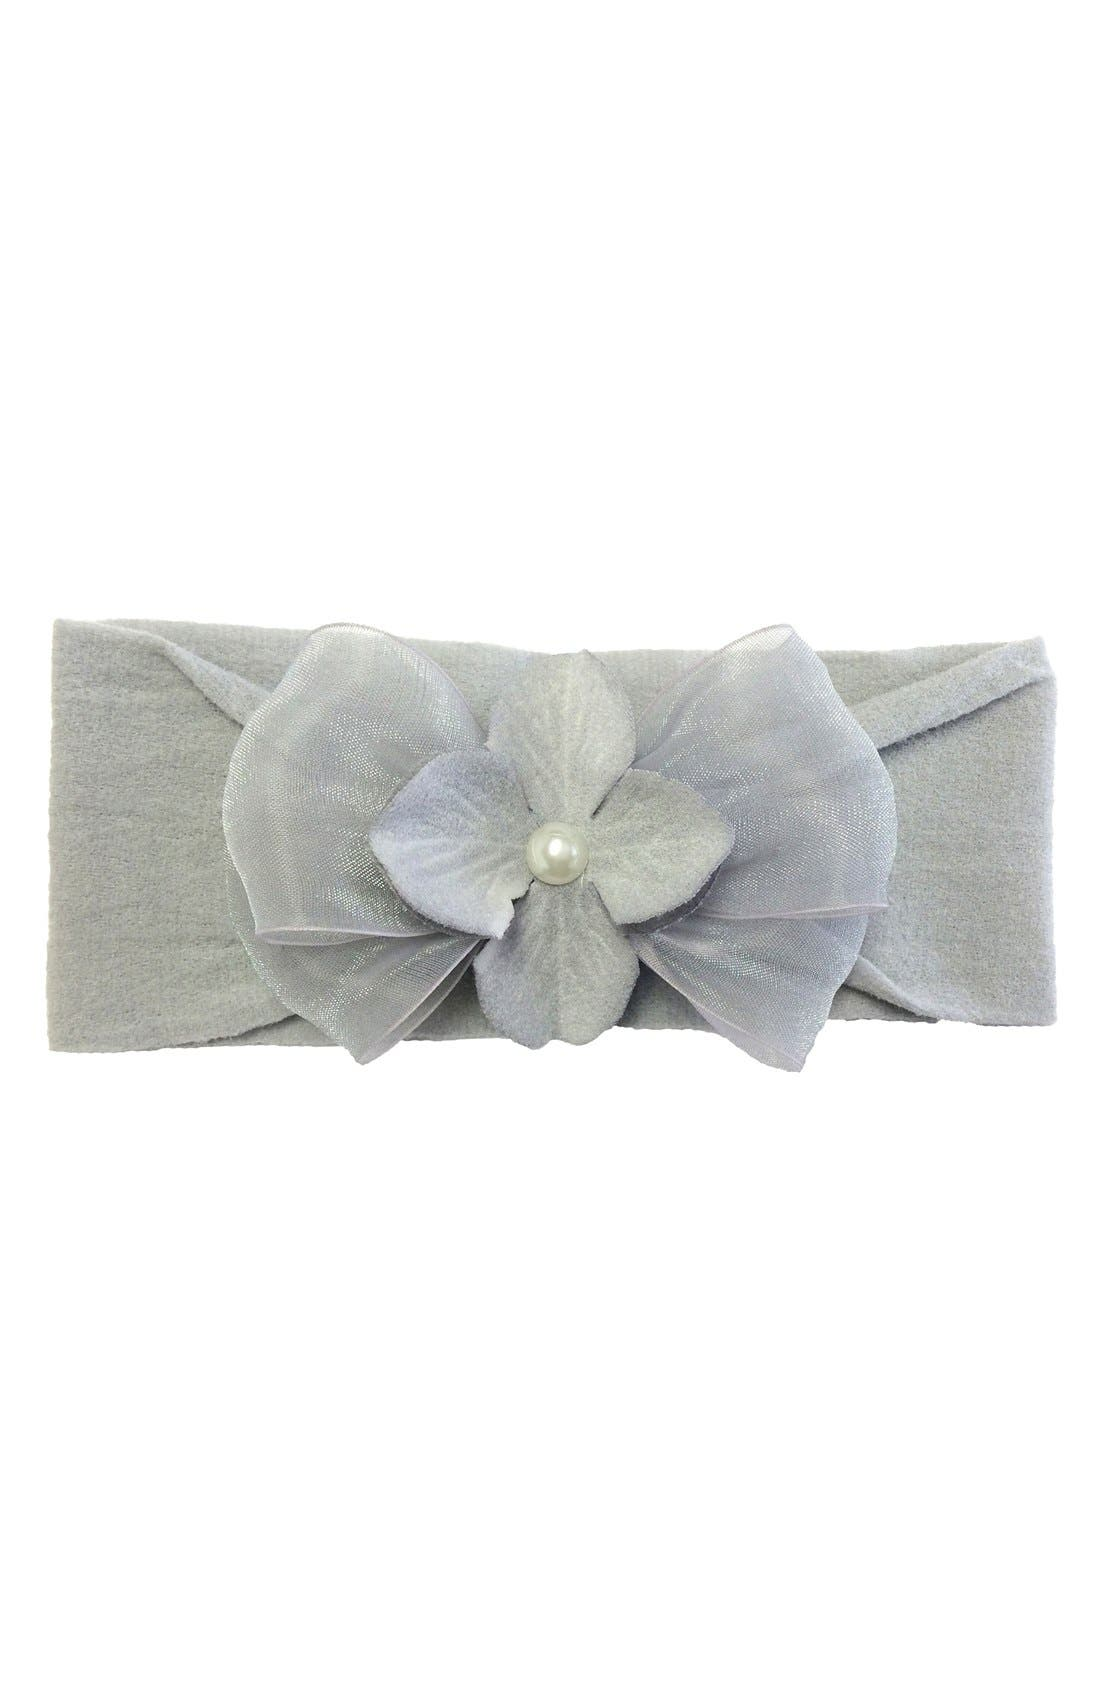 BABY BLING Pearly Headband